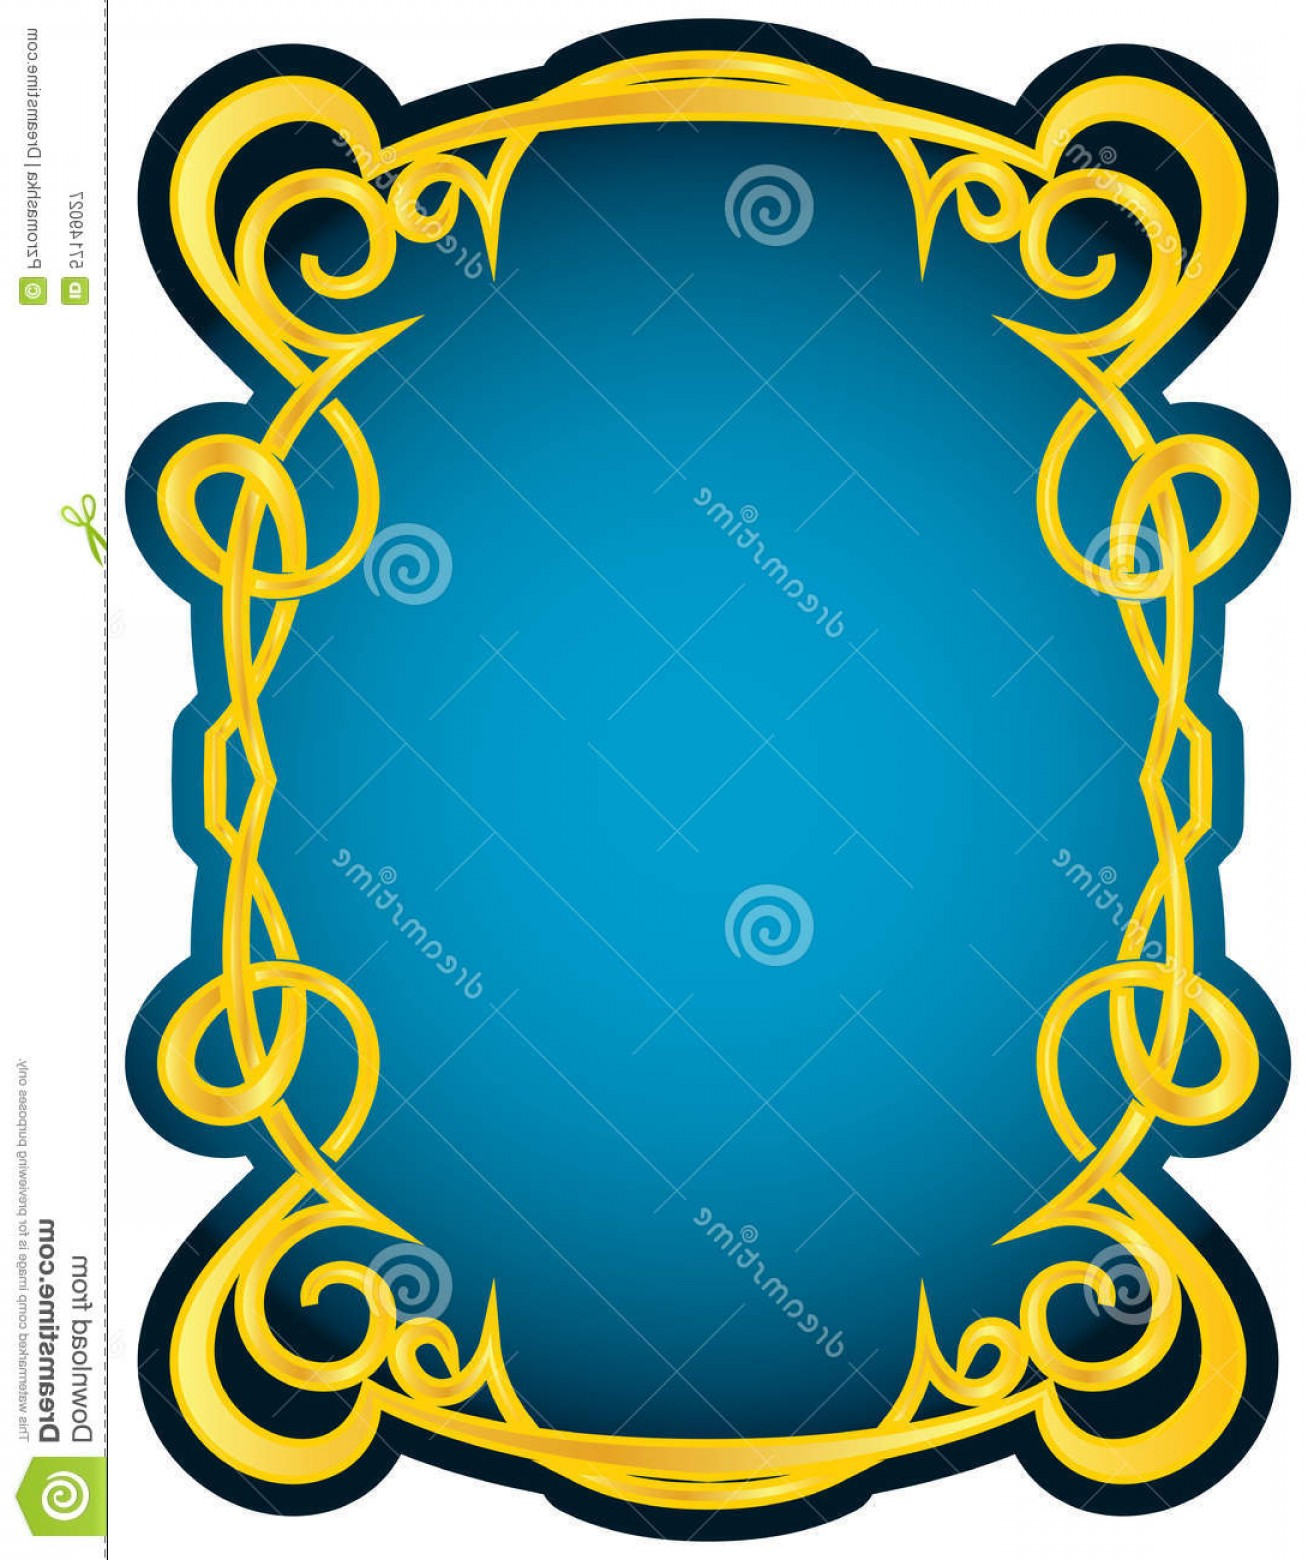 Blue And Gold Border Vector: Stock Illustration Vector Gold Frame Blue Elegant Border Image